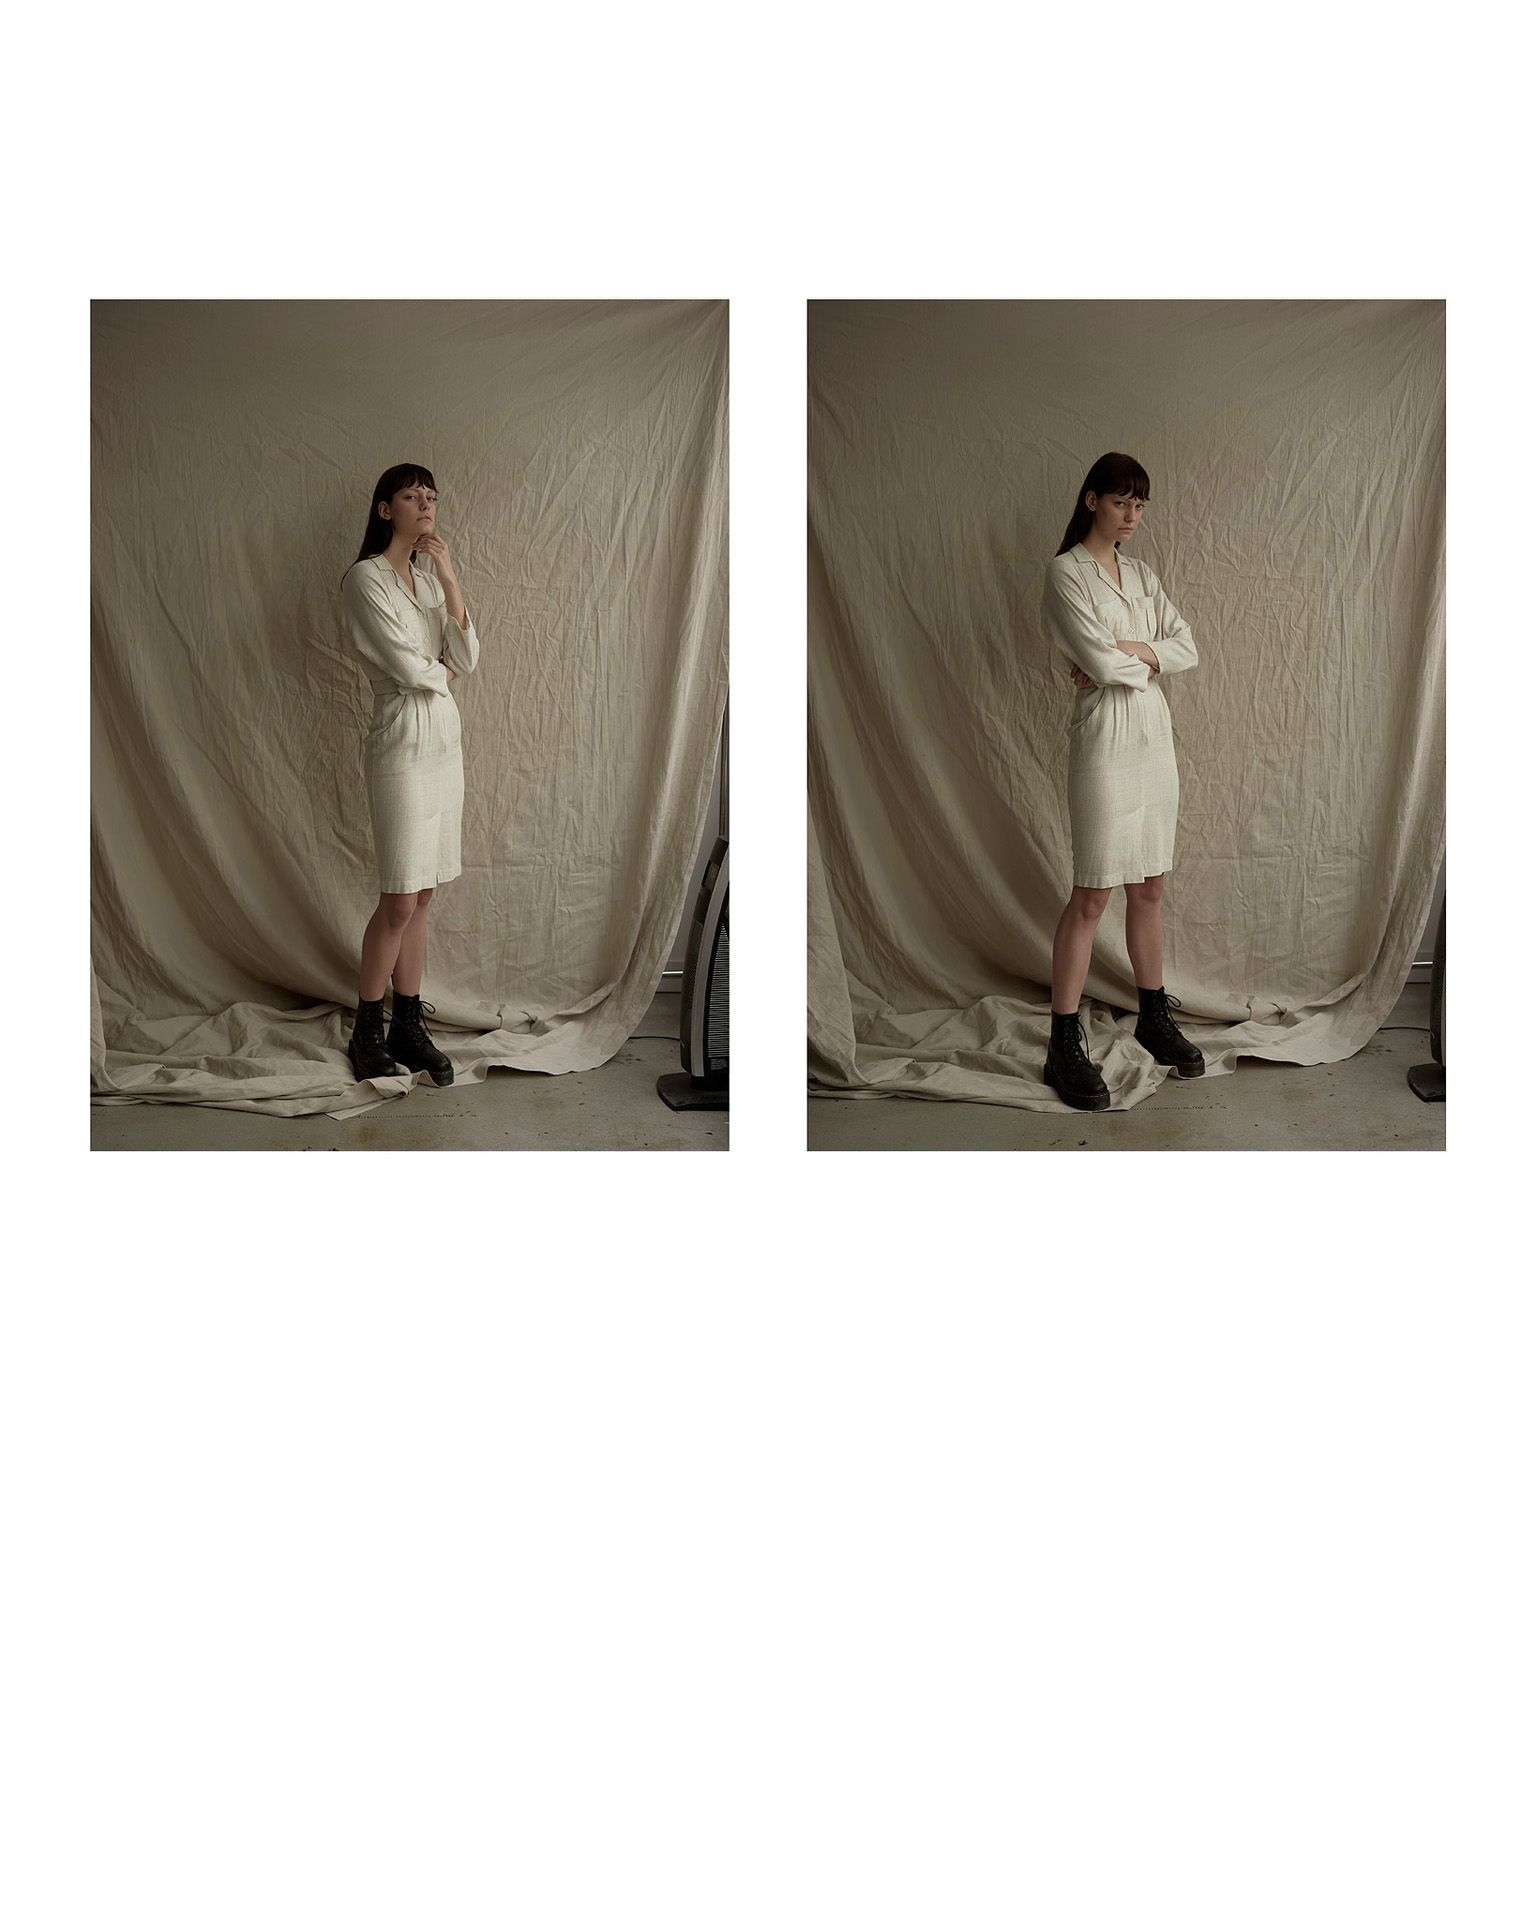 diptych of woman model wearing white over the knee dress with long sleeves by Maxyme G Delisle for Mariane